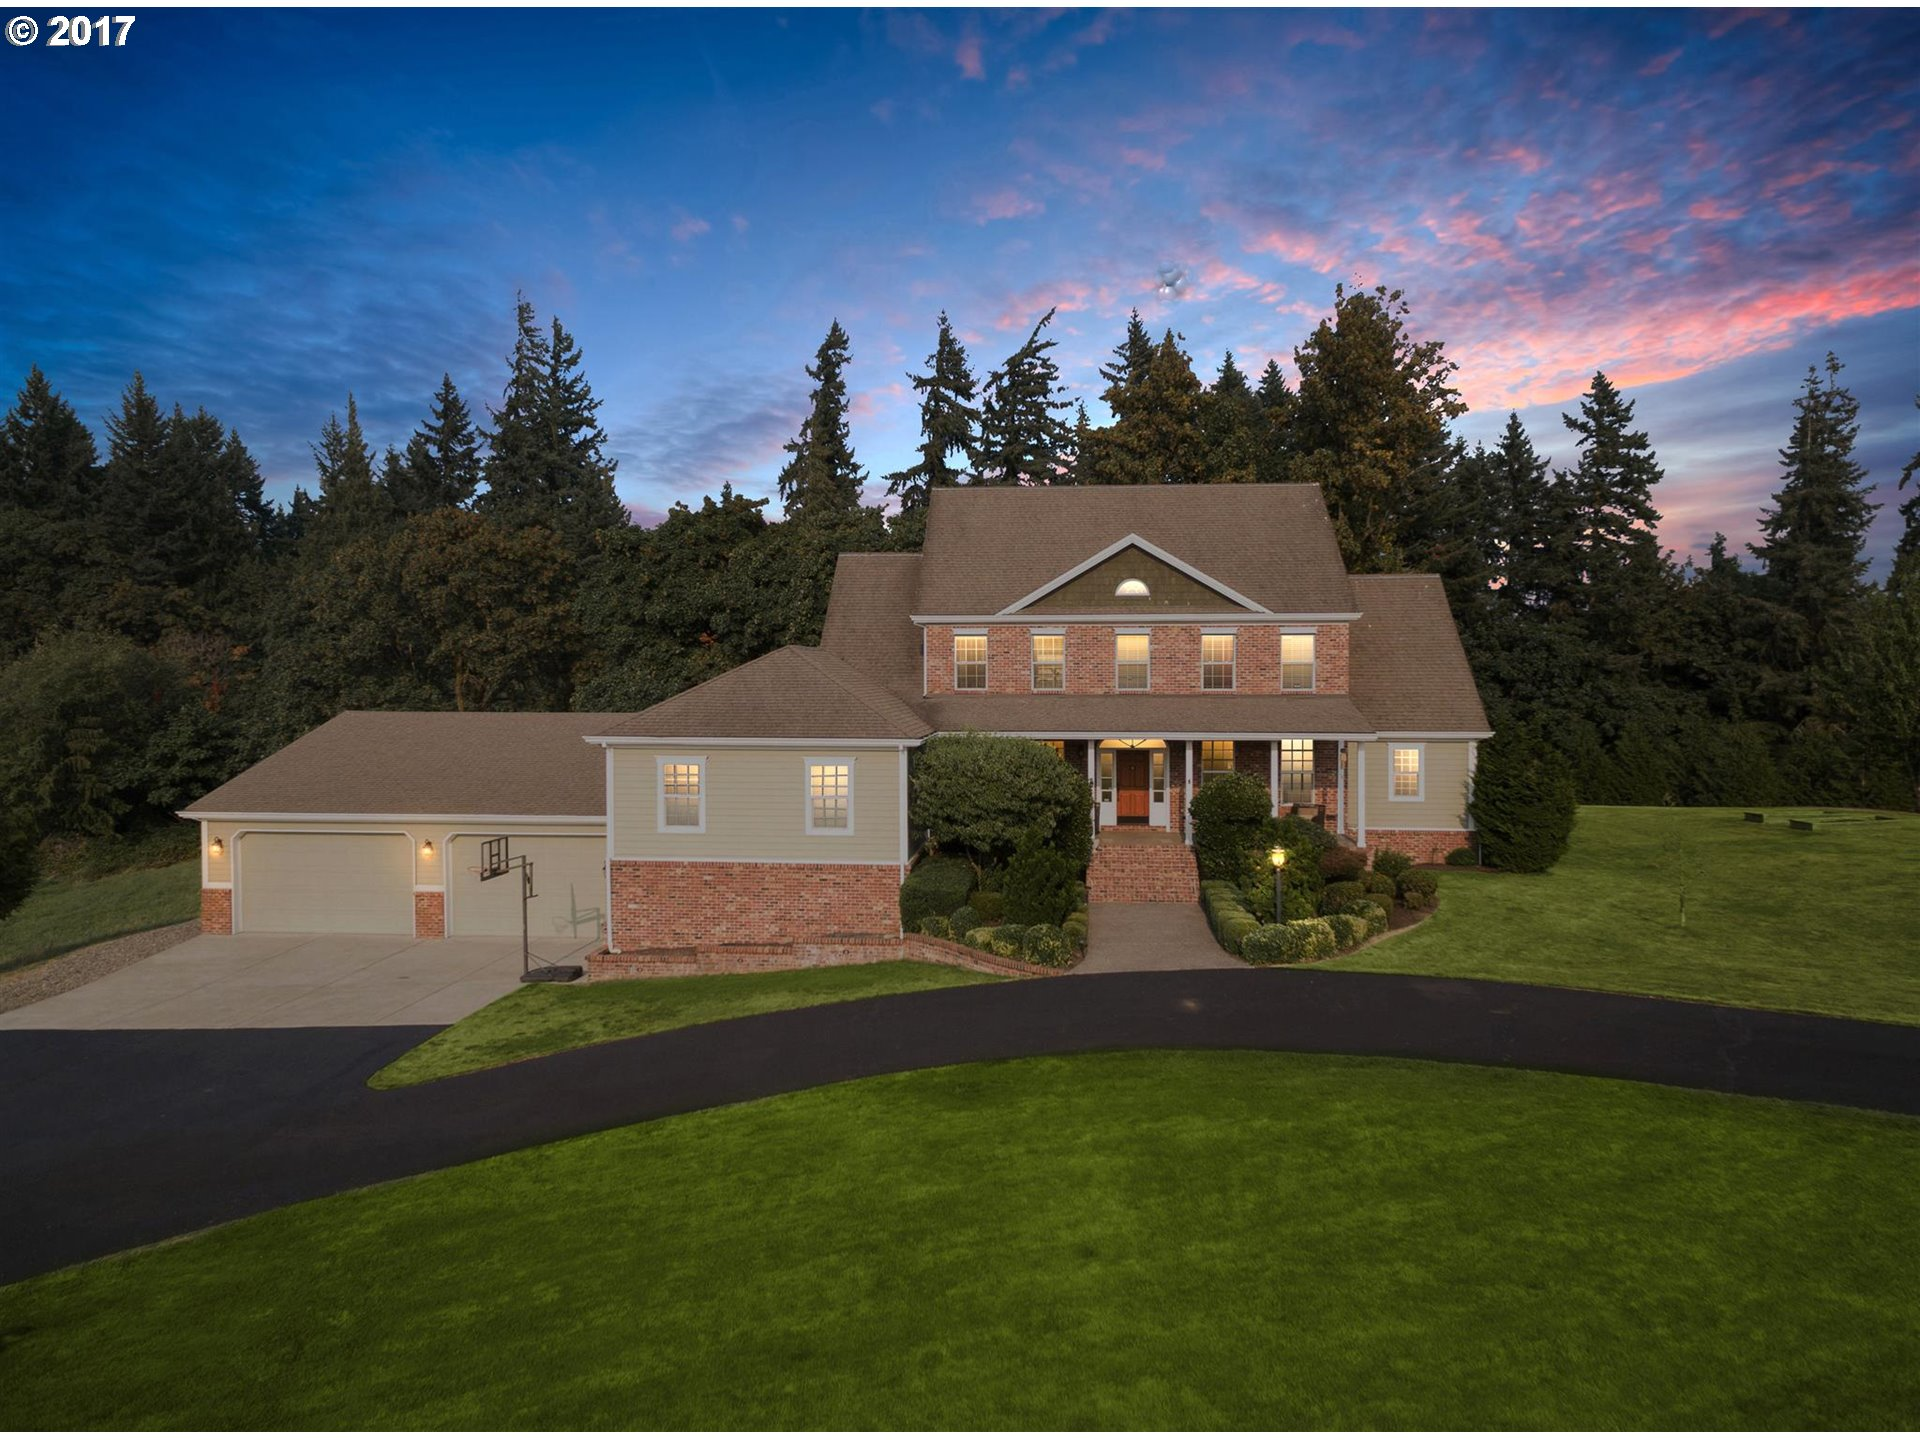 Amazing 5 acre Rolling Hills Estate! Over 6,100 sq ft with master on main plus 4 large bedrooms, 7 bathrooms, totally remodeled kitchen with red oak hardwood floors, two bonus rooms, exercise room, relaxation room that would make a wonderful theater room. Relax outside on the covered front porch or the 1500 sq ft back deck. The 10 car garage will make you the envy of all your friends. Room for horses too. The list of amenities goes on!